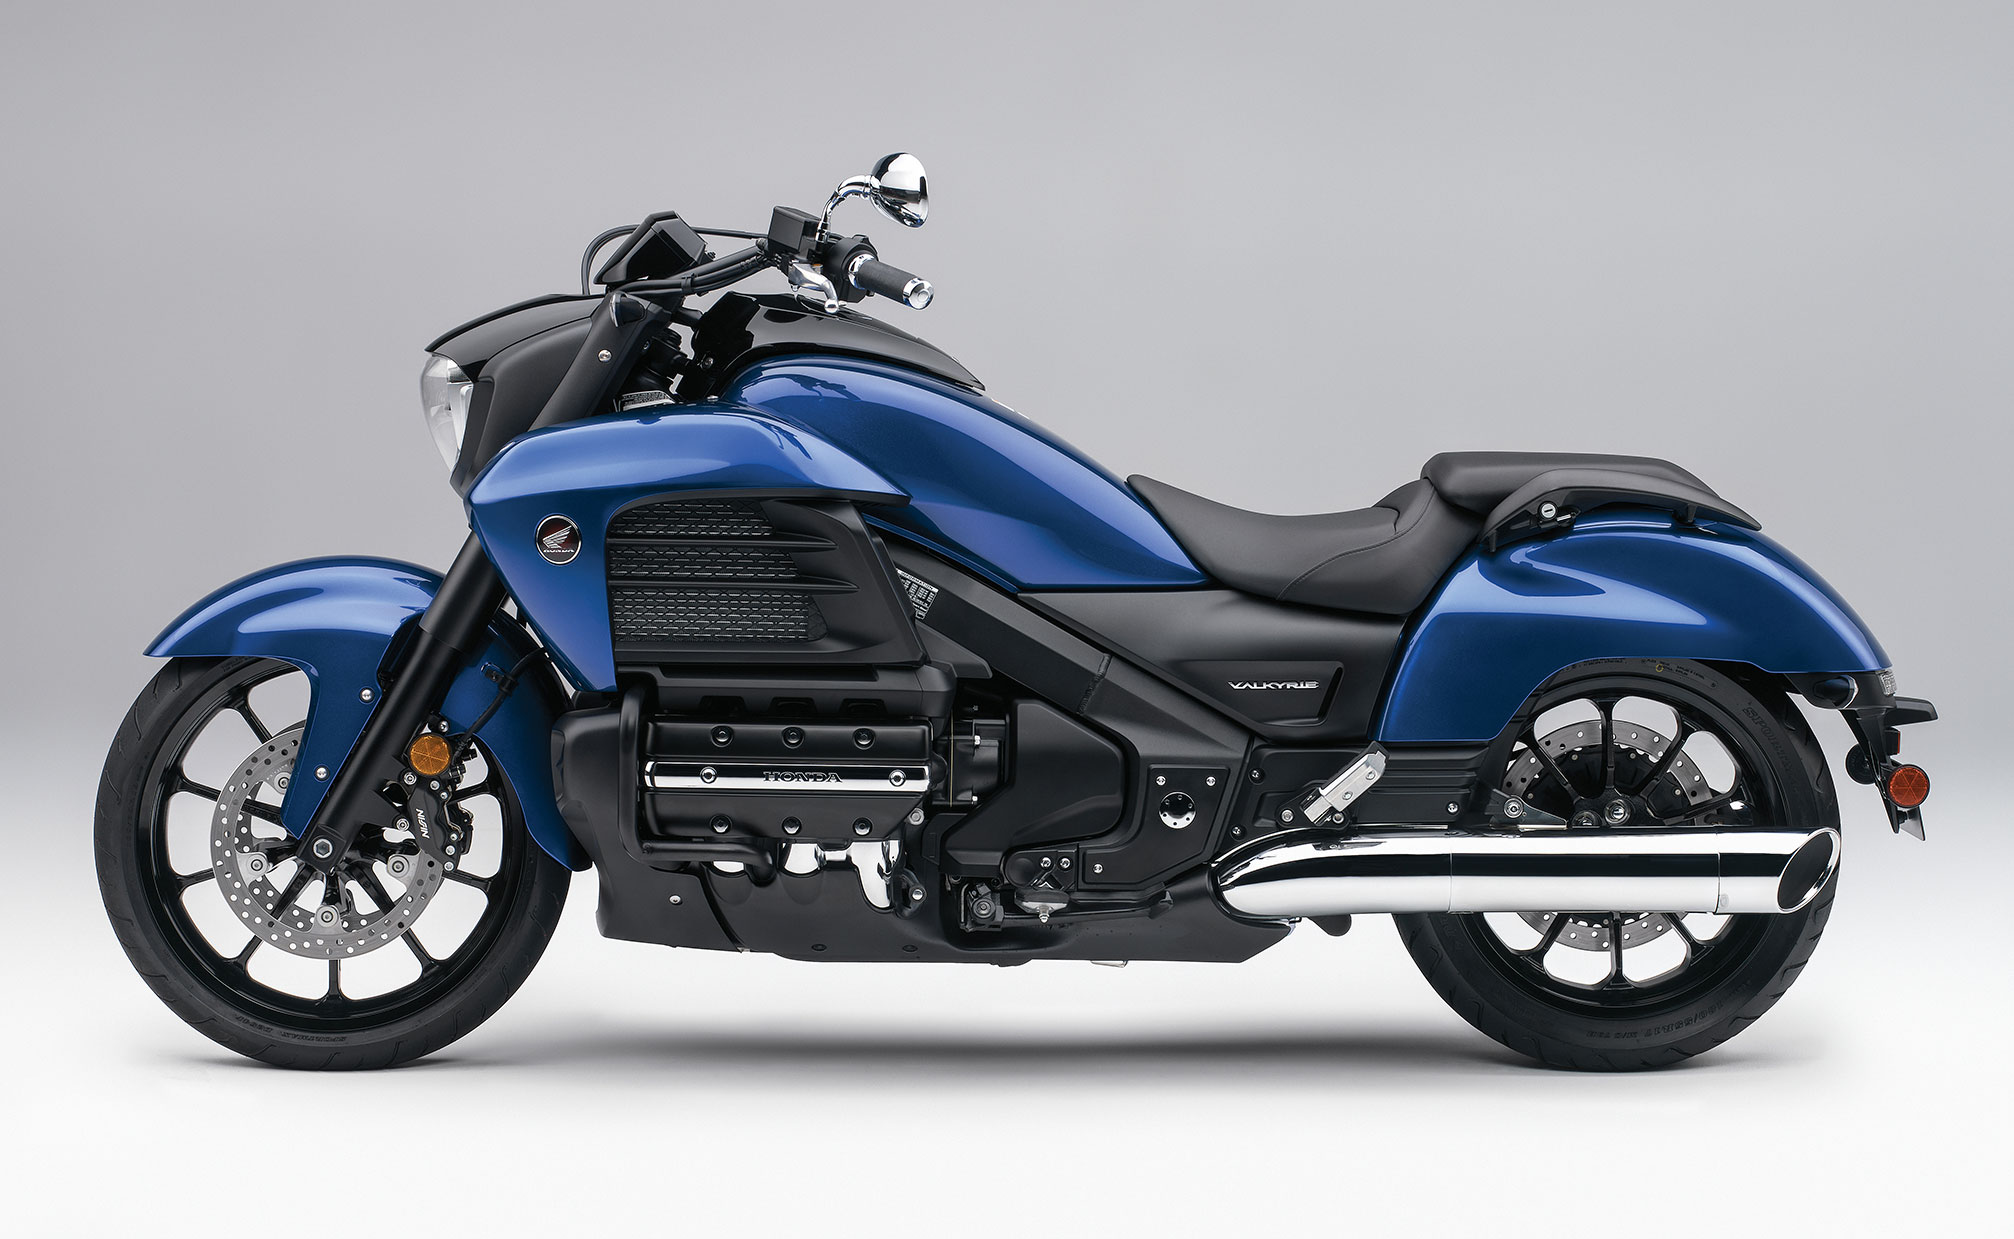 2014 Honda Valkyrie >> Honda GL 1800 Gold Wing Valkyrie: pics, specs and list of seriess by year - onlymotorbikes.com